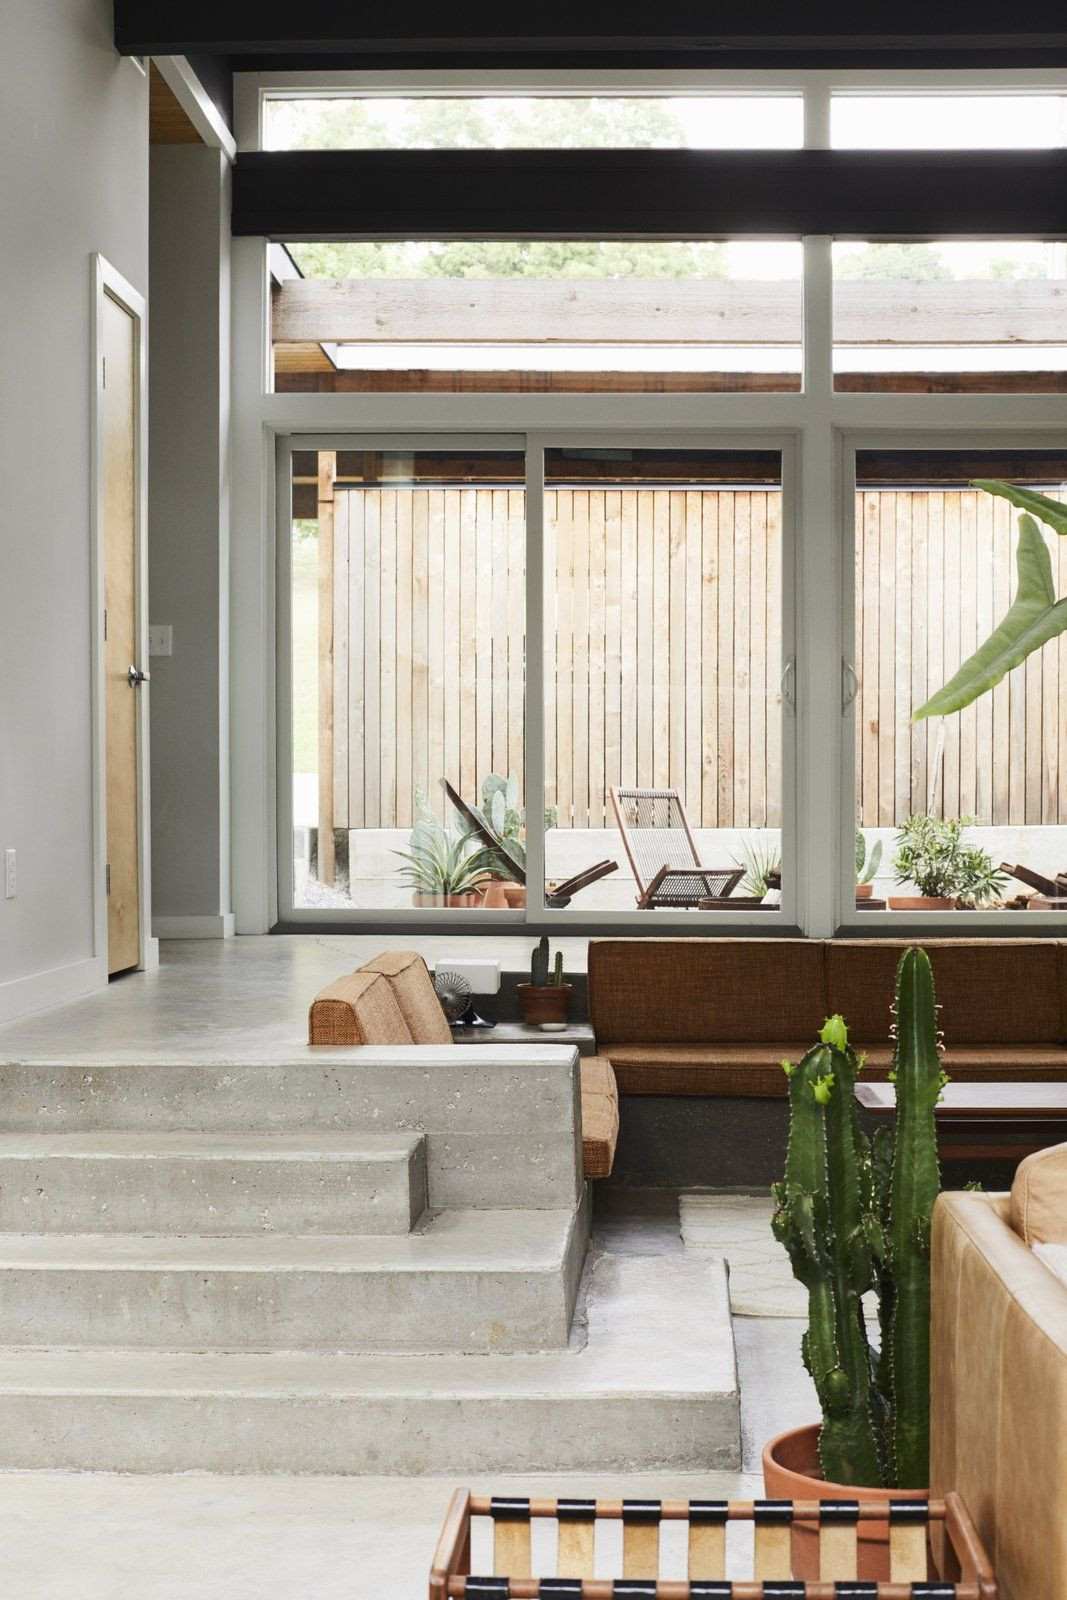 Dwell A Self Taught Designer Builds A Midcentury Inspired Home On A Budget Stairs In Living Room Sunken Living Room Concrete Living Room